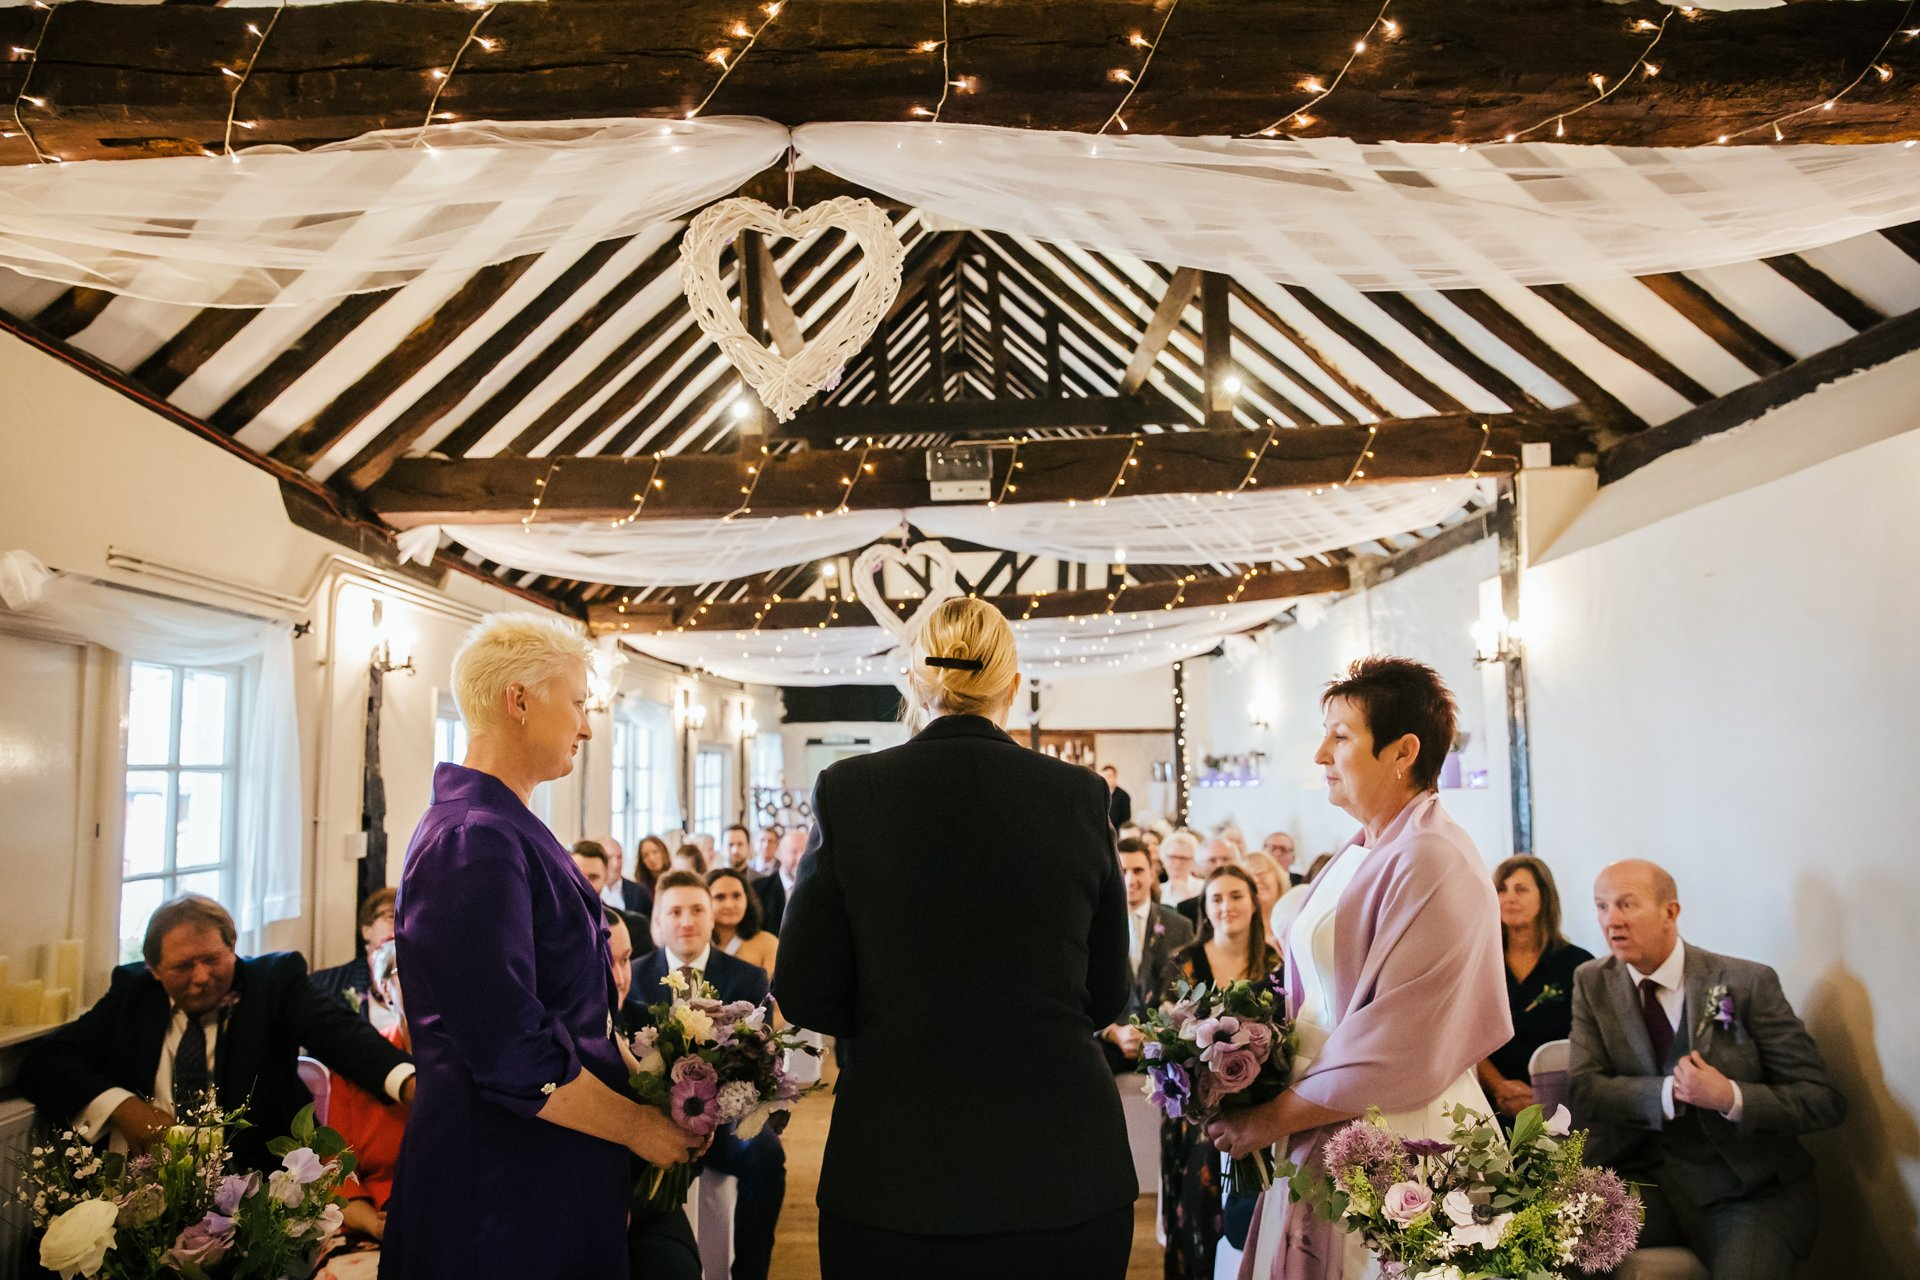 Wedding ceremony of two brides at The Bull Wrotham Kent